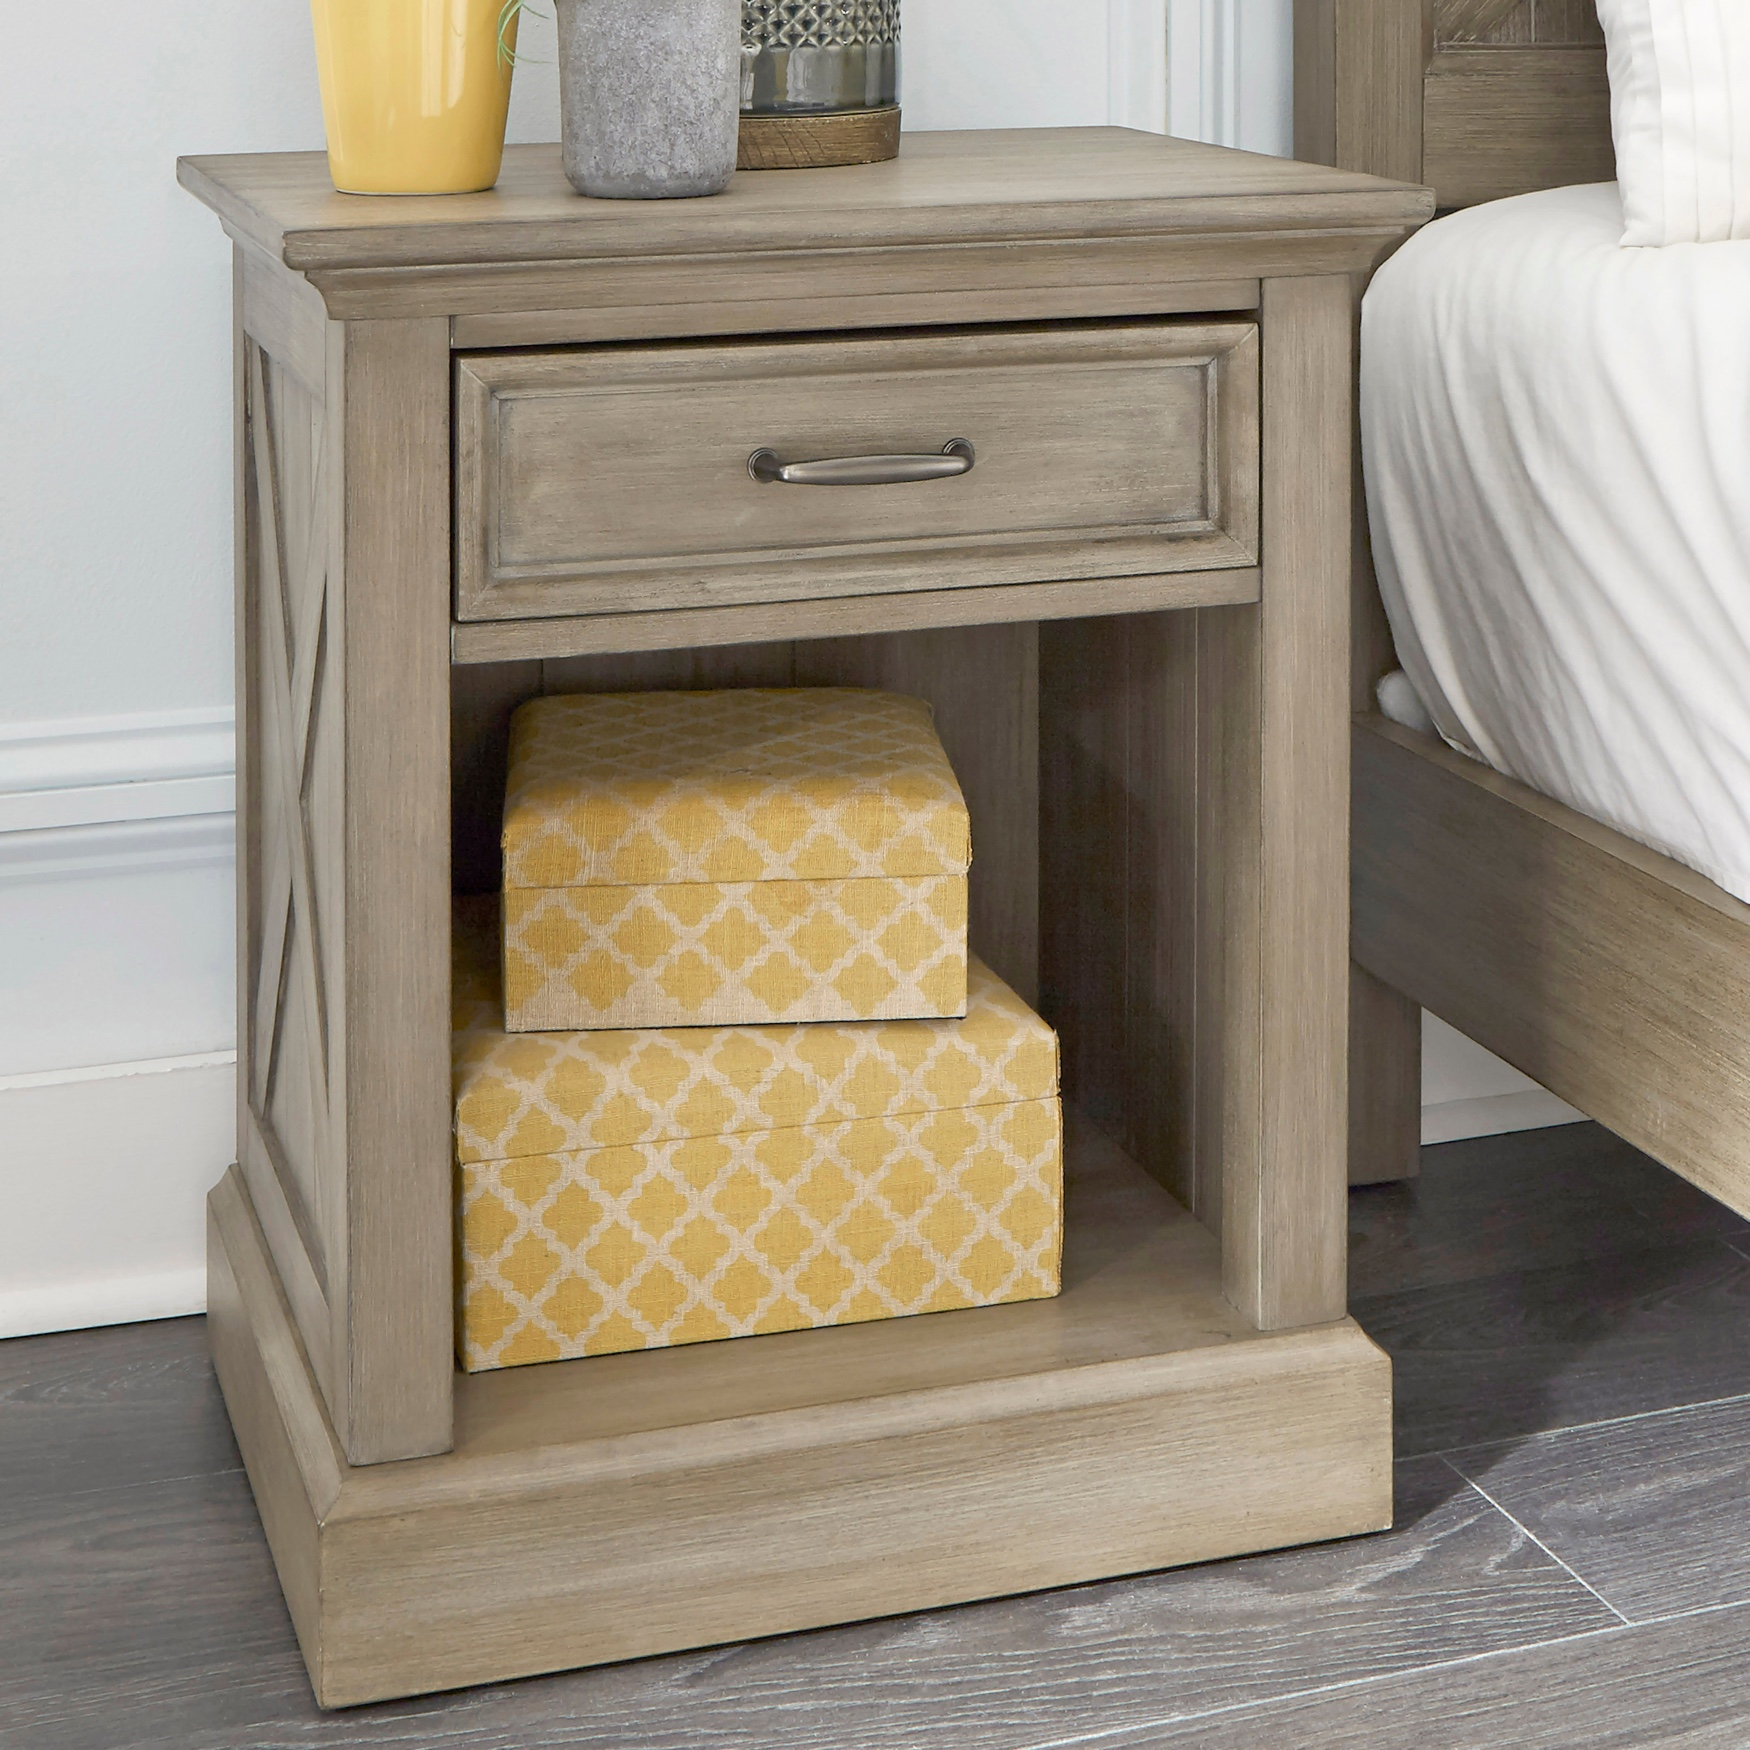 Mountain Lodge Nightstand by Home Styles, MULTI GRAY